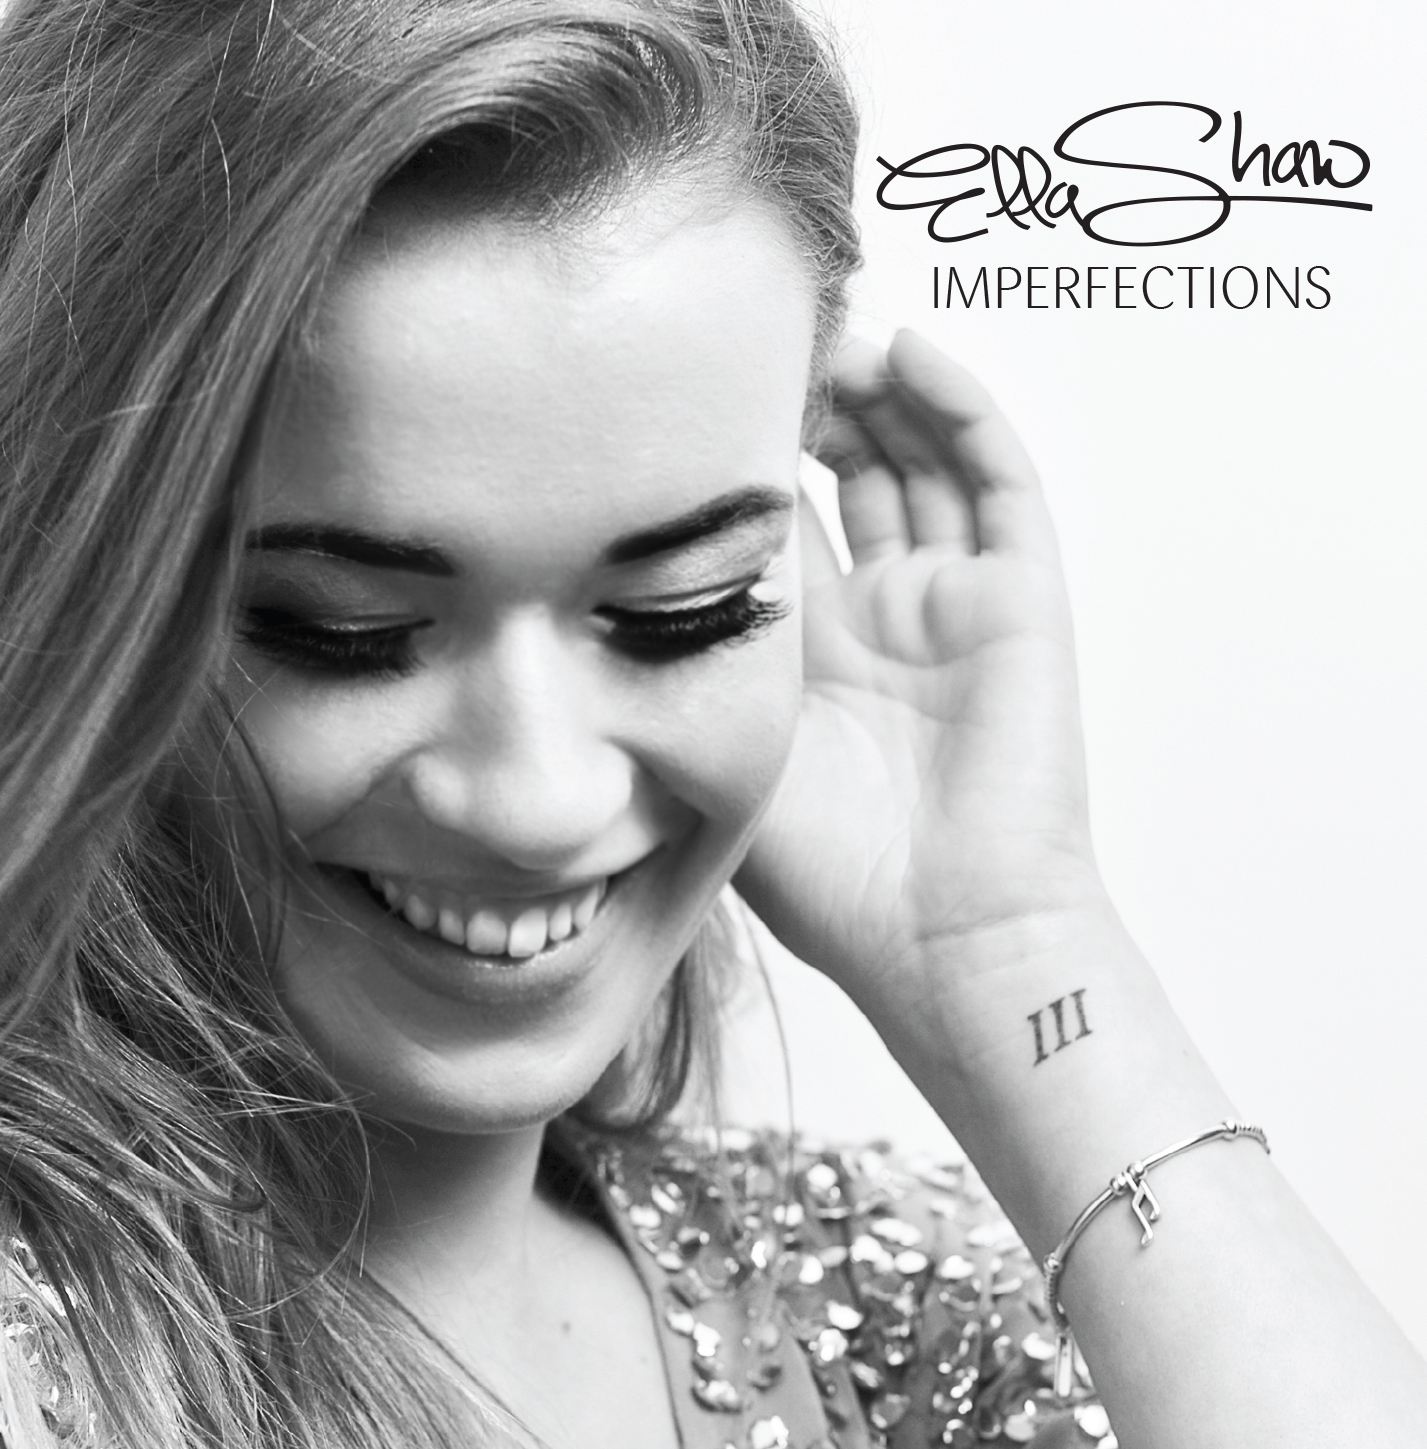 Ella Shaw Imperfections